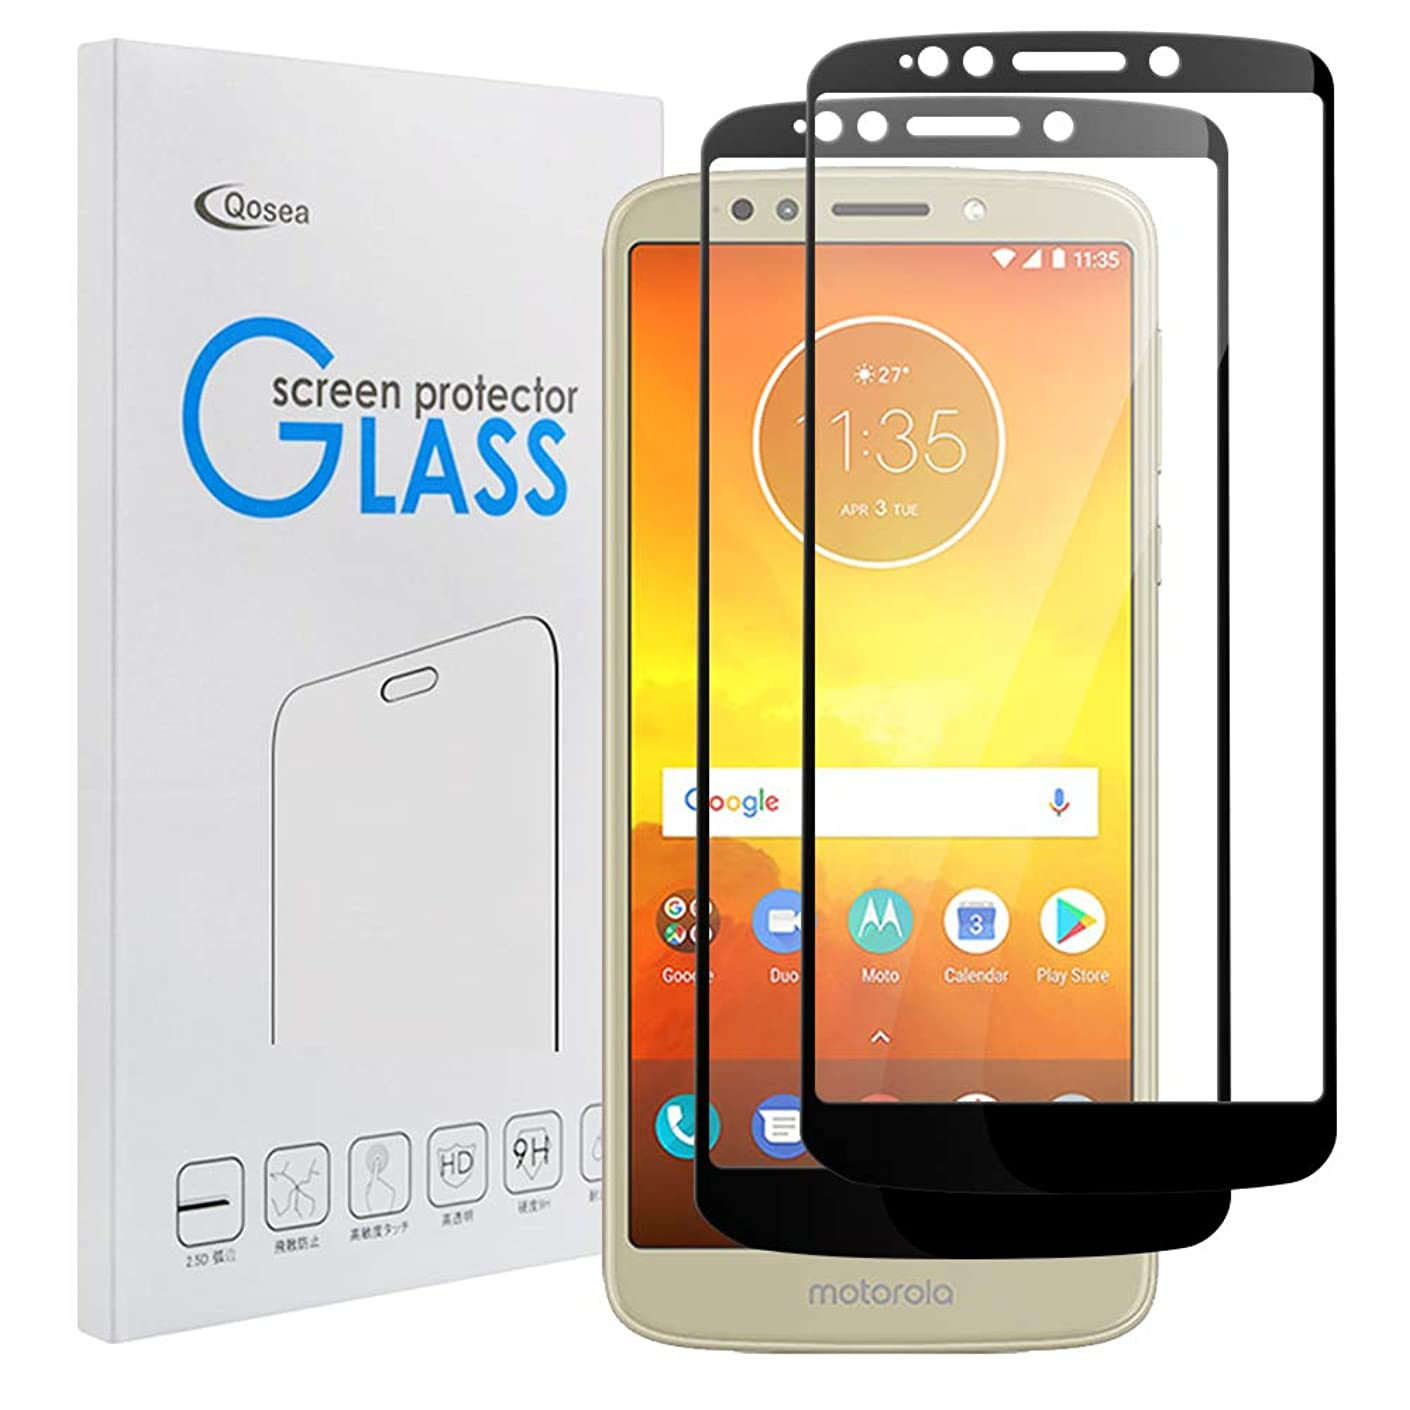 Qoosea Compatible with Moto E6 Screen Protector [2 Pack] Ultra-Thin 3D Full Coverage 9H Hardness Crystal Scratch Resistant Tempered Glass Compatible with for Moto E6